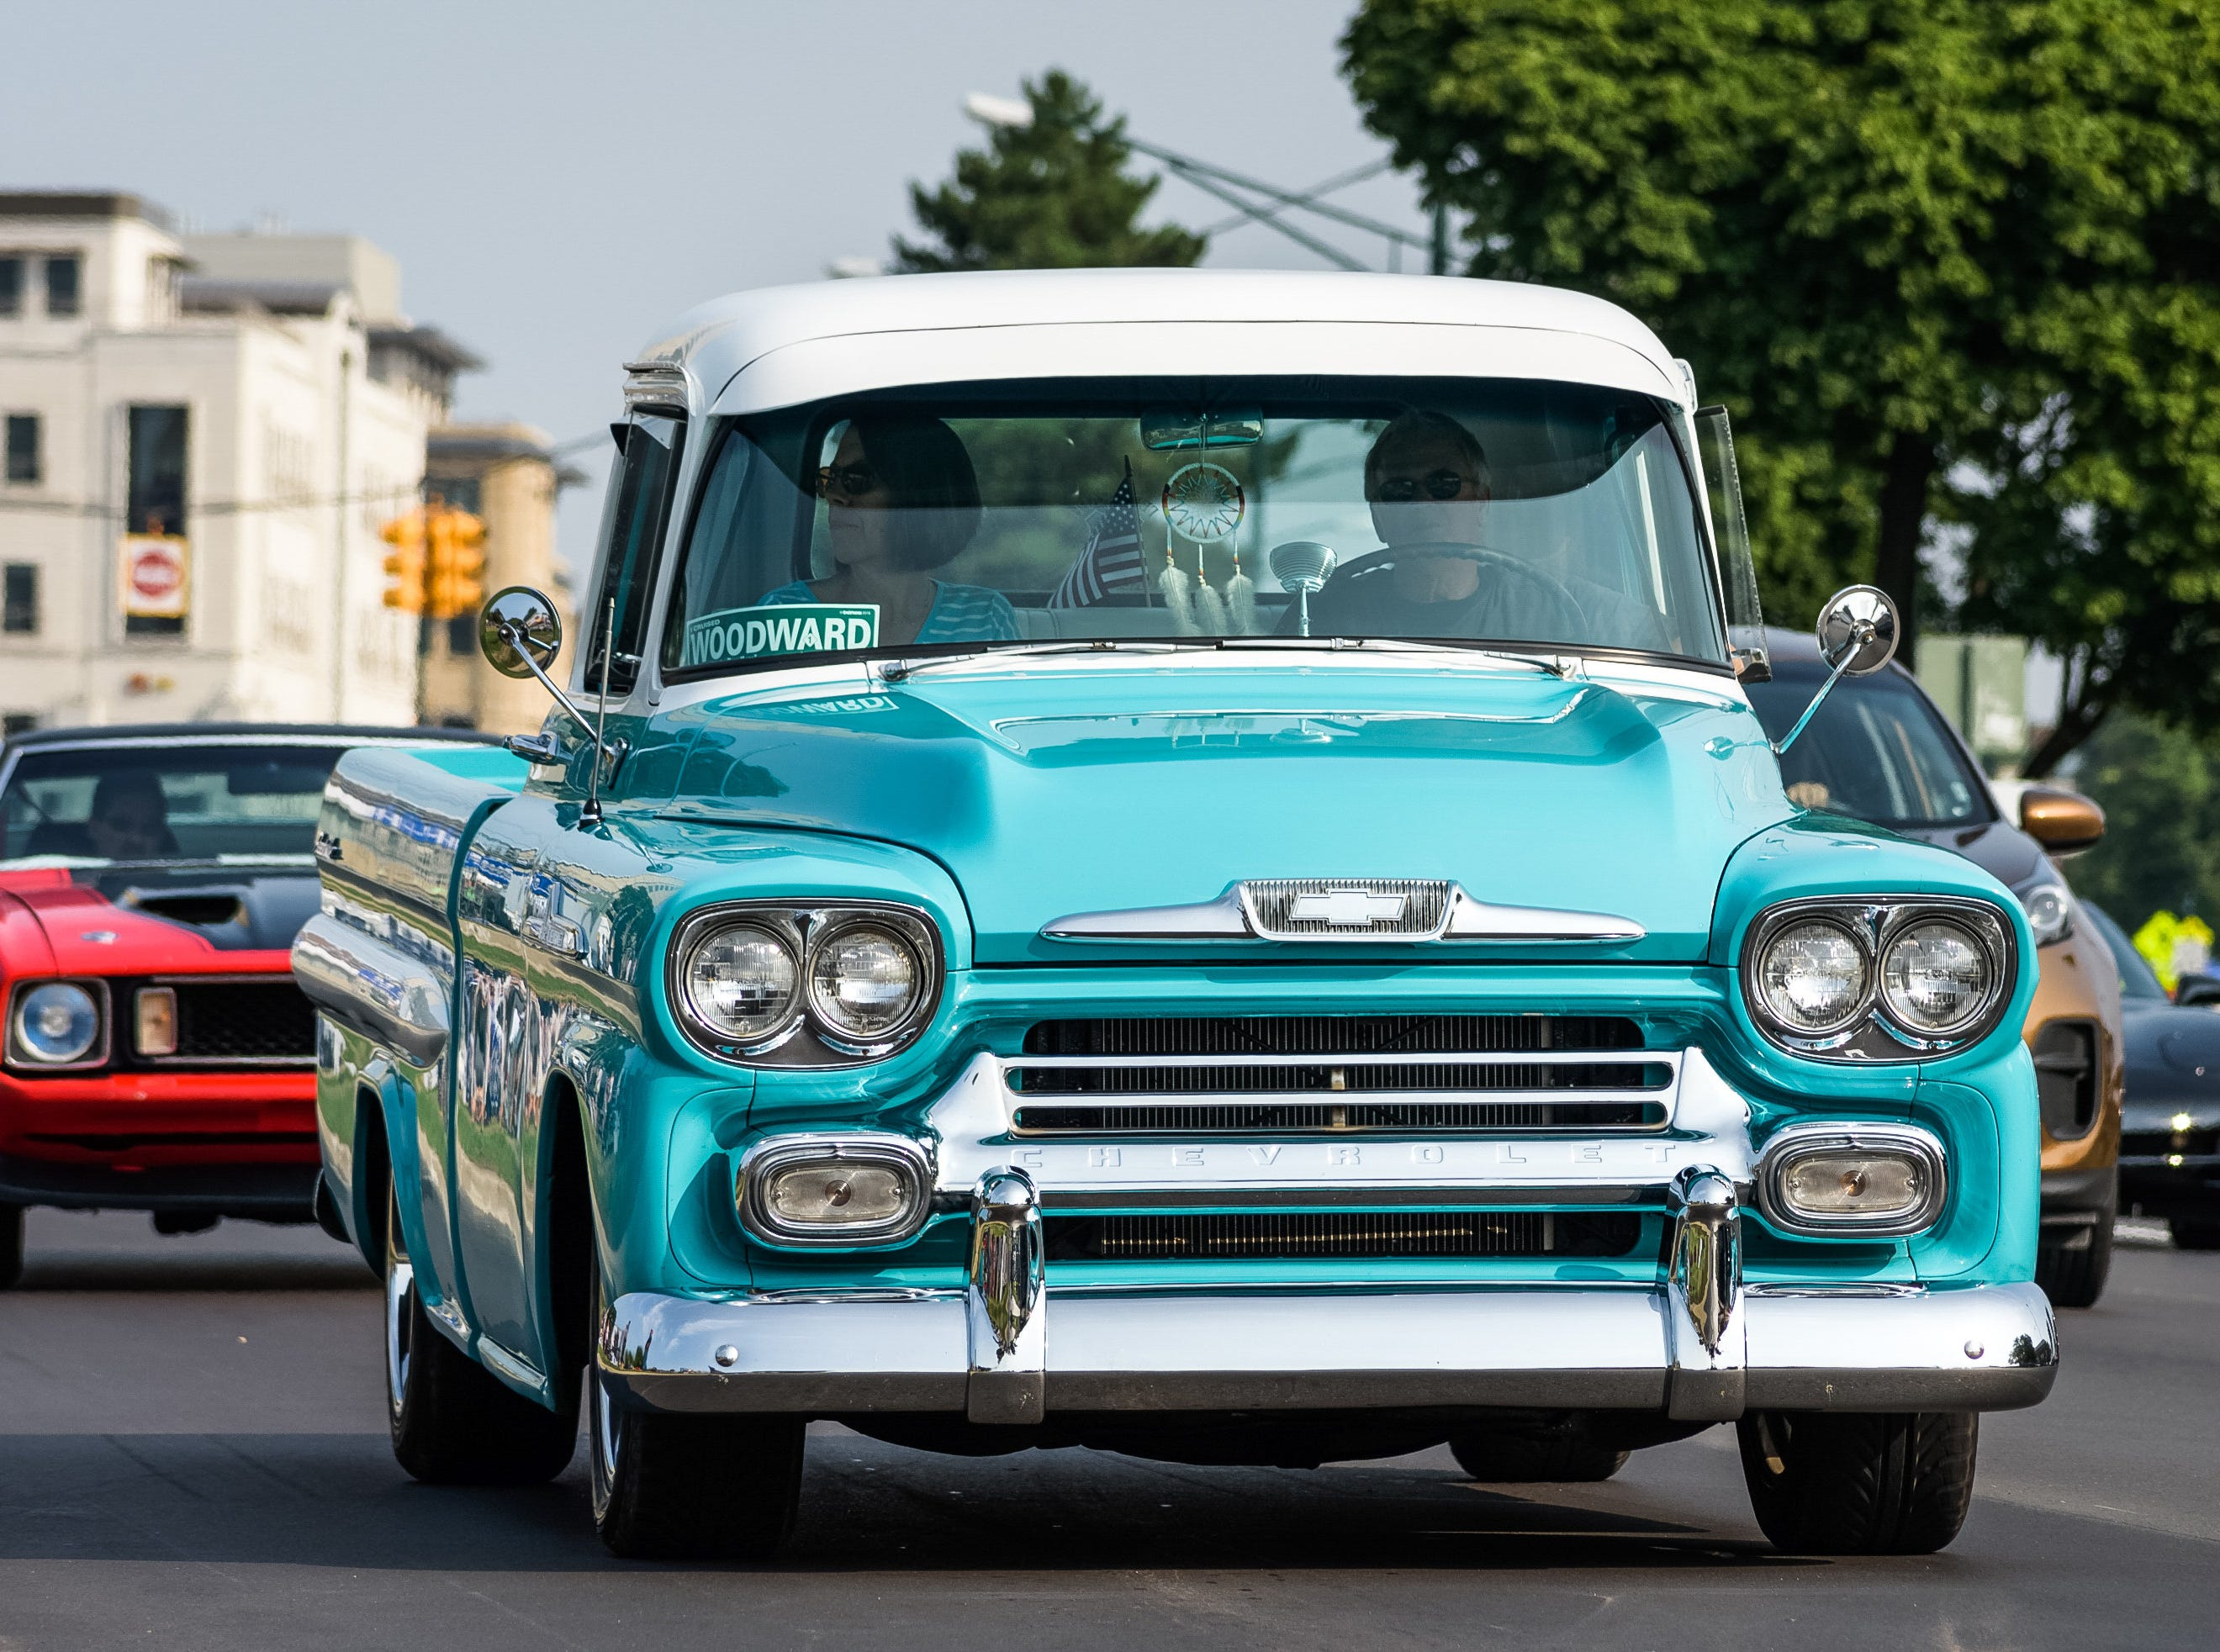 A vintage Chevrolet pickup drives up Woodward Avenue in front of the Chevrolet exhibit Saturday, August 18, 2018 during the Woodward Dream Cruise in Birmingham, Michigan.